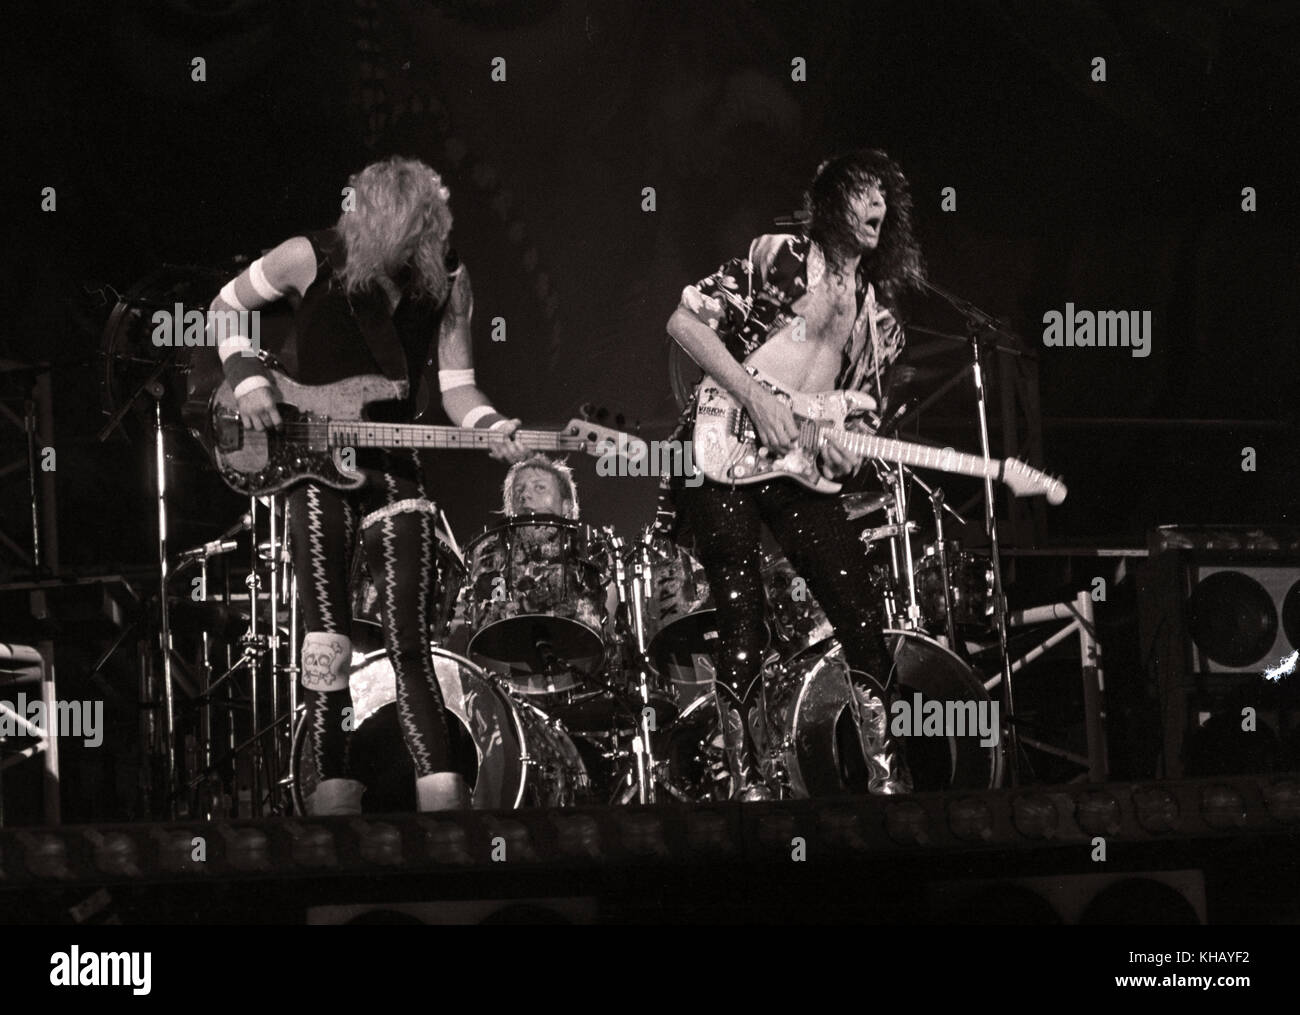 David Lee Roth Band Featuring Steve Vai And Billy Sheehan Performing Stock Photo Alamy